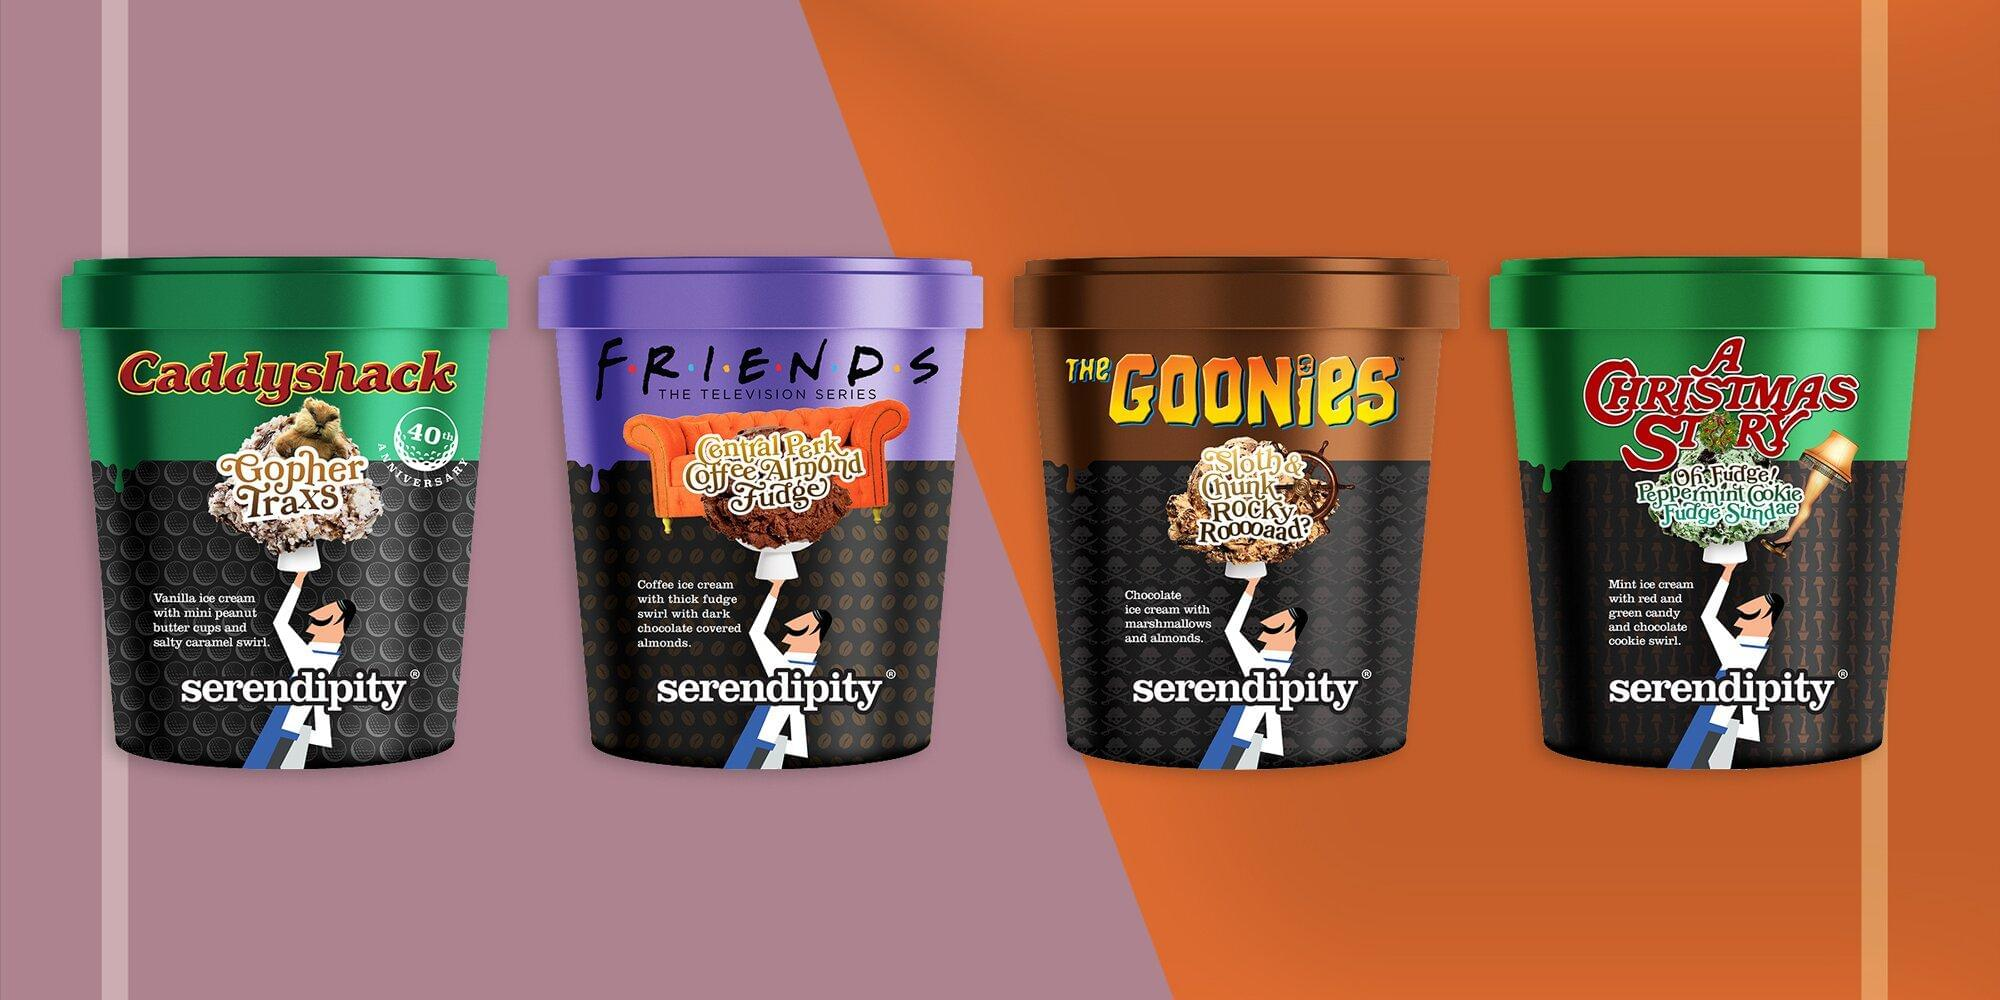 'Friends,' 'The Goonies,' and More Are Getting Their Own Ice Cream Flavors